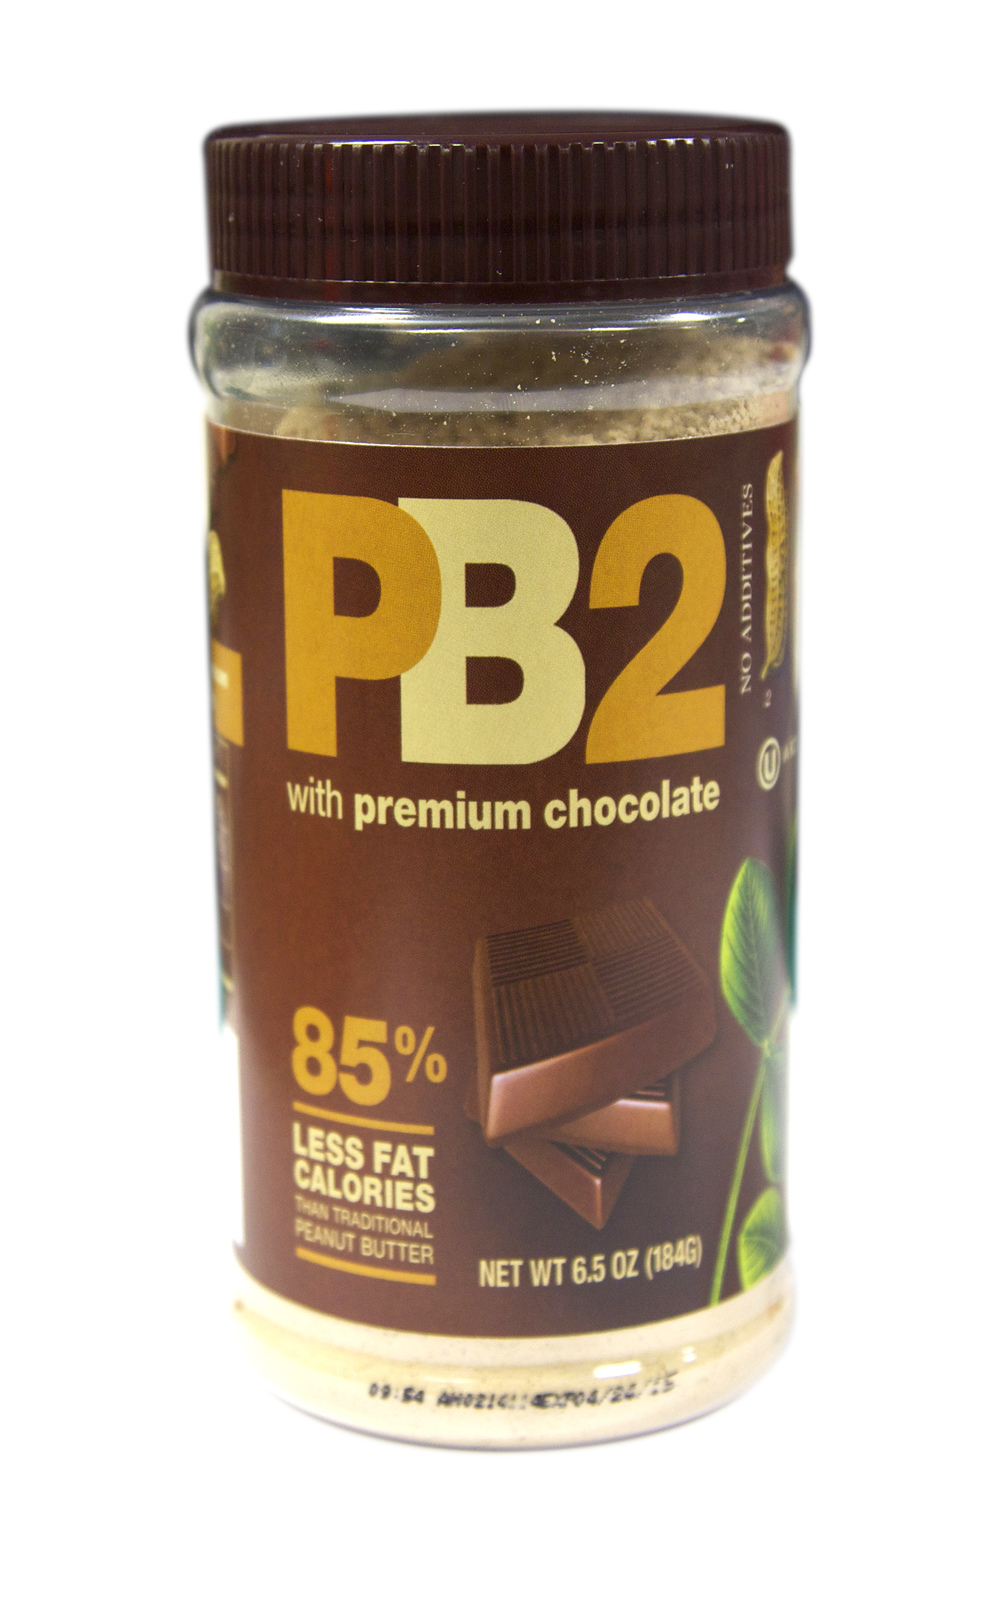 PB2 Powdered Peanut Butter - Chocolate (184g) image